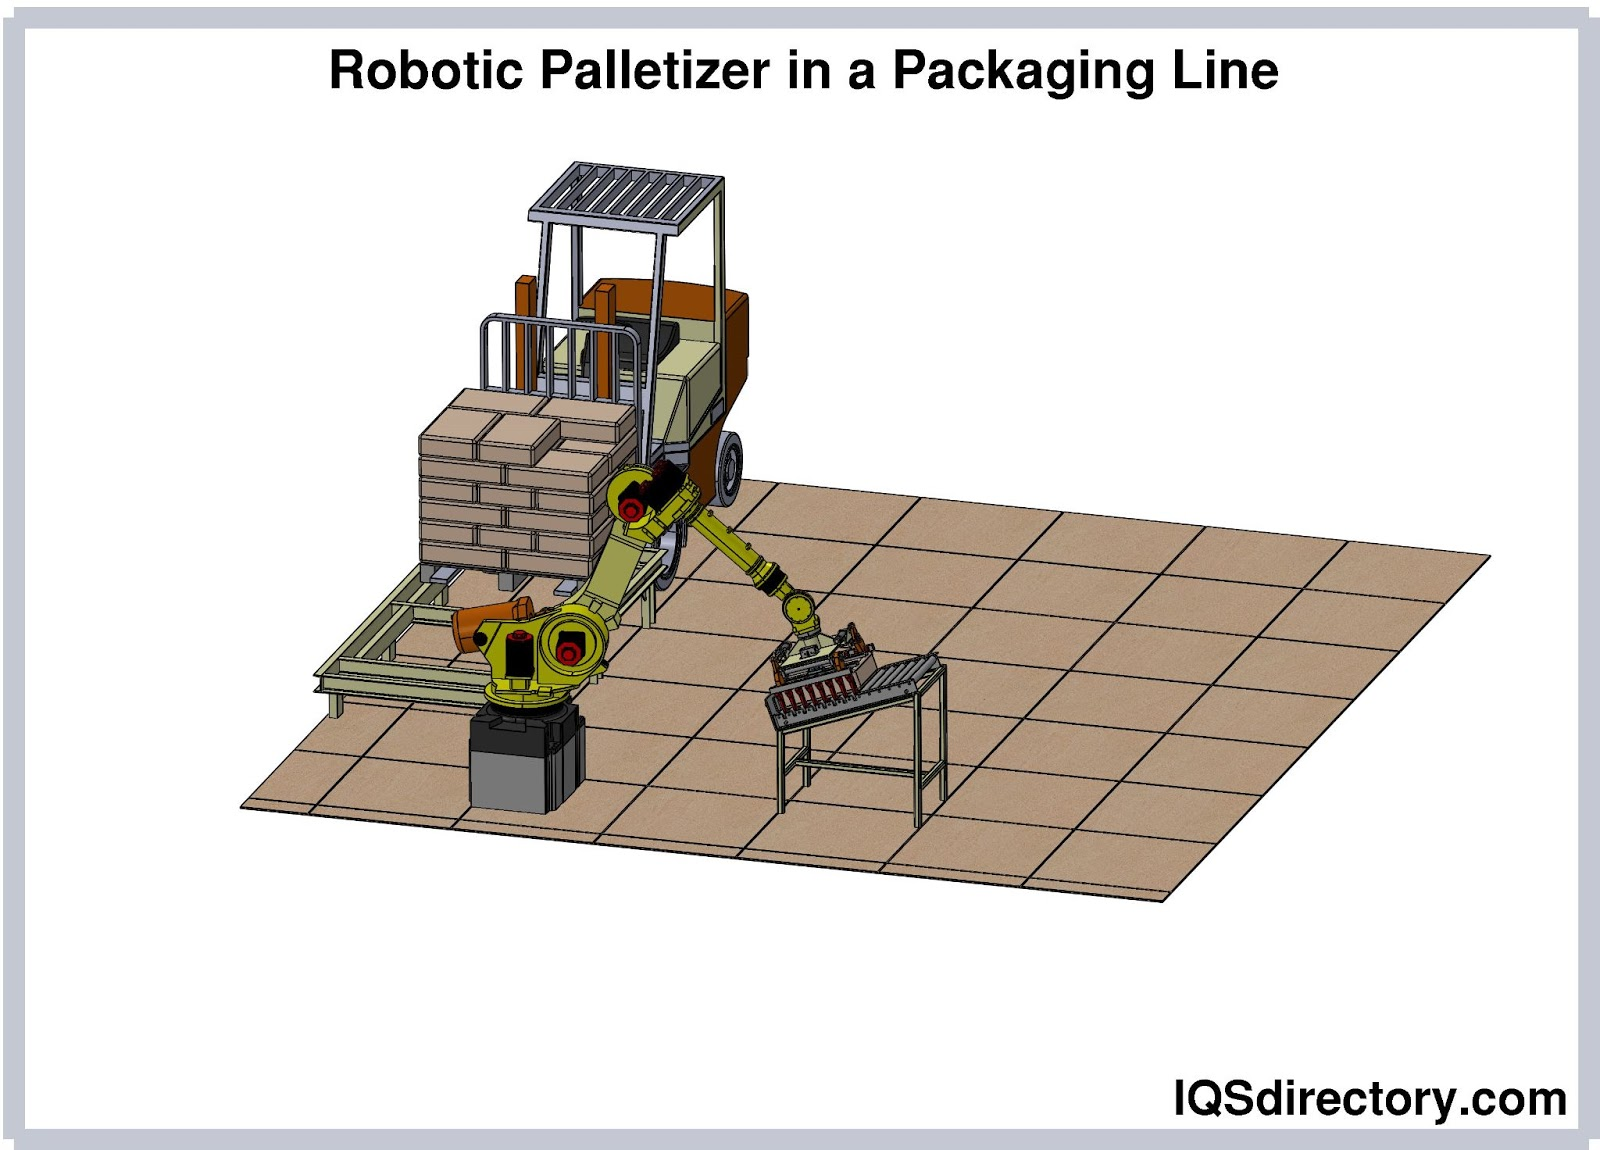 Robotic Palletizer in a Packaging Line